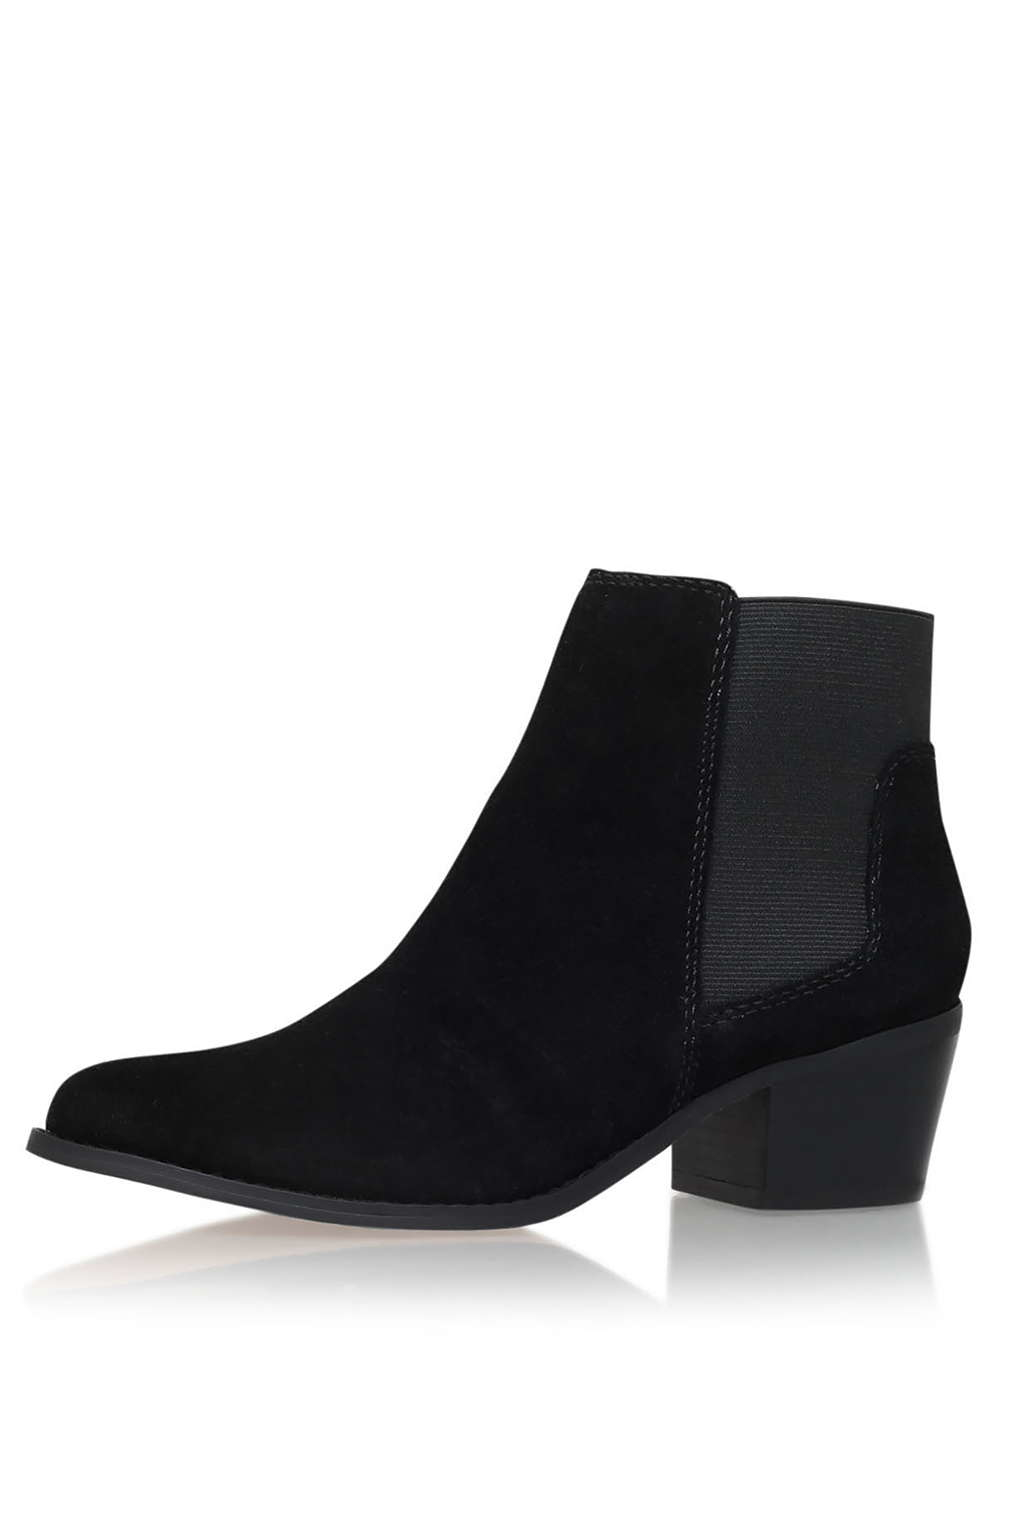 Topshop Black Low Heel Ankle Boots By Miss Kg In Black Lyst